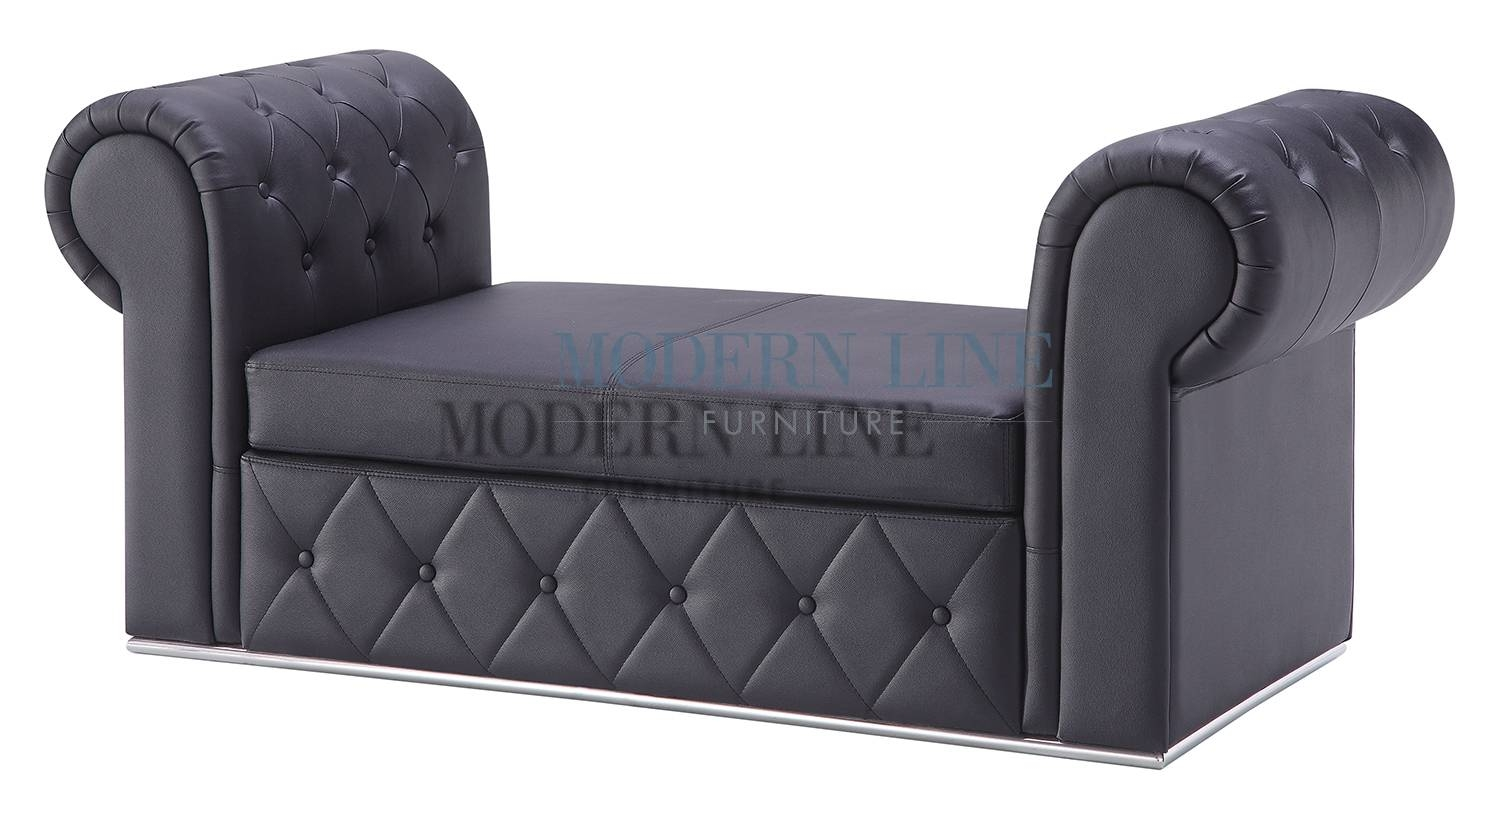 11 Backless Sofas | Carehouse intended for Backless Chaise Sofa (Image 1 of 30)